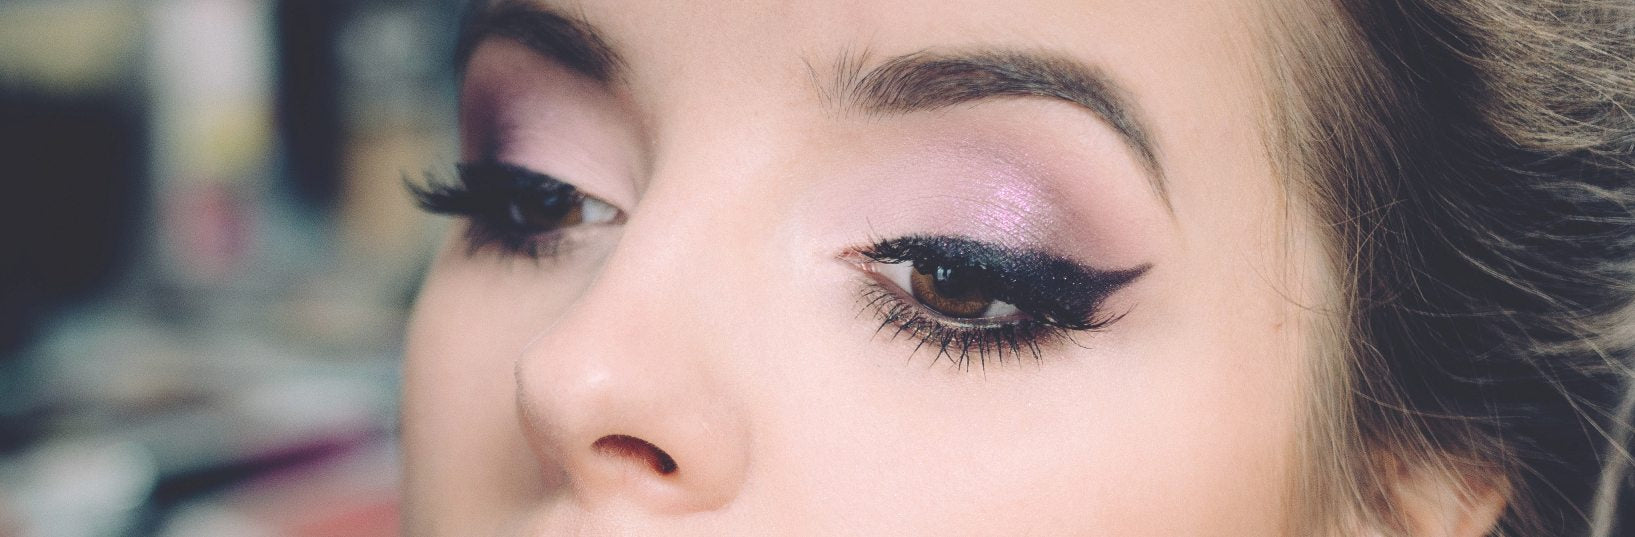 eye lashes and brows